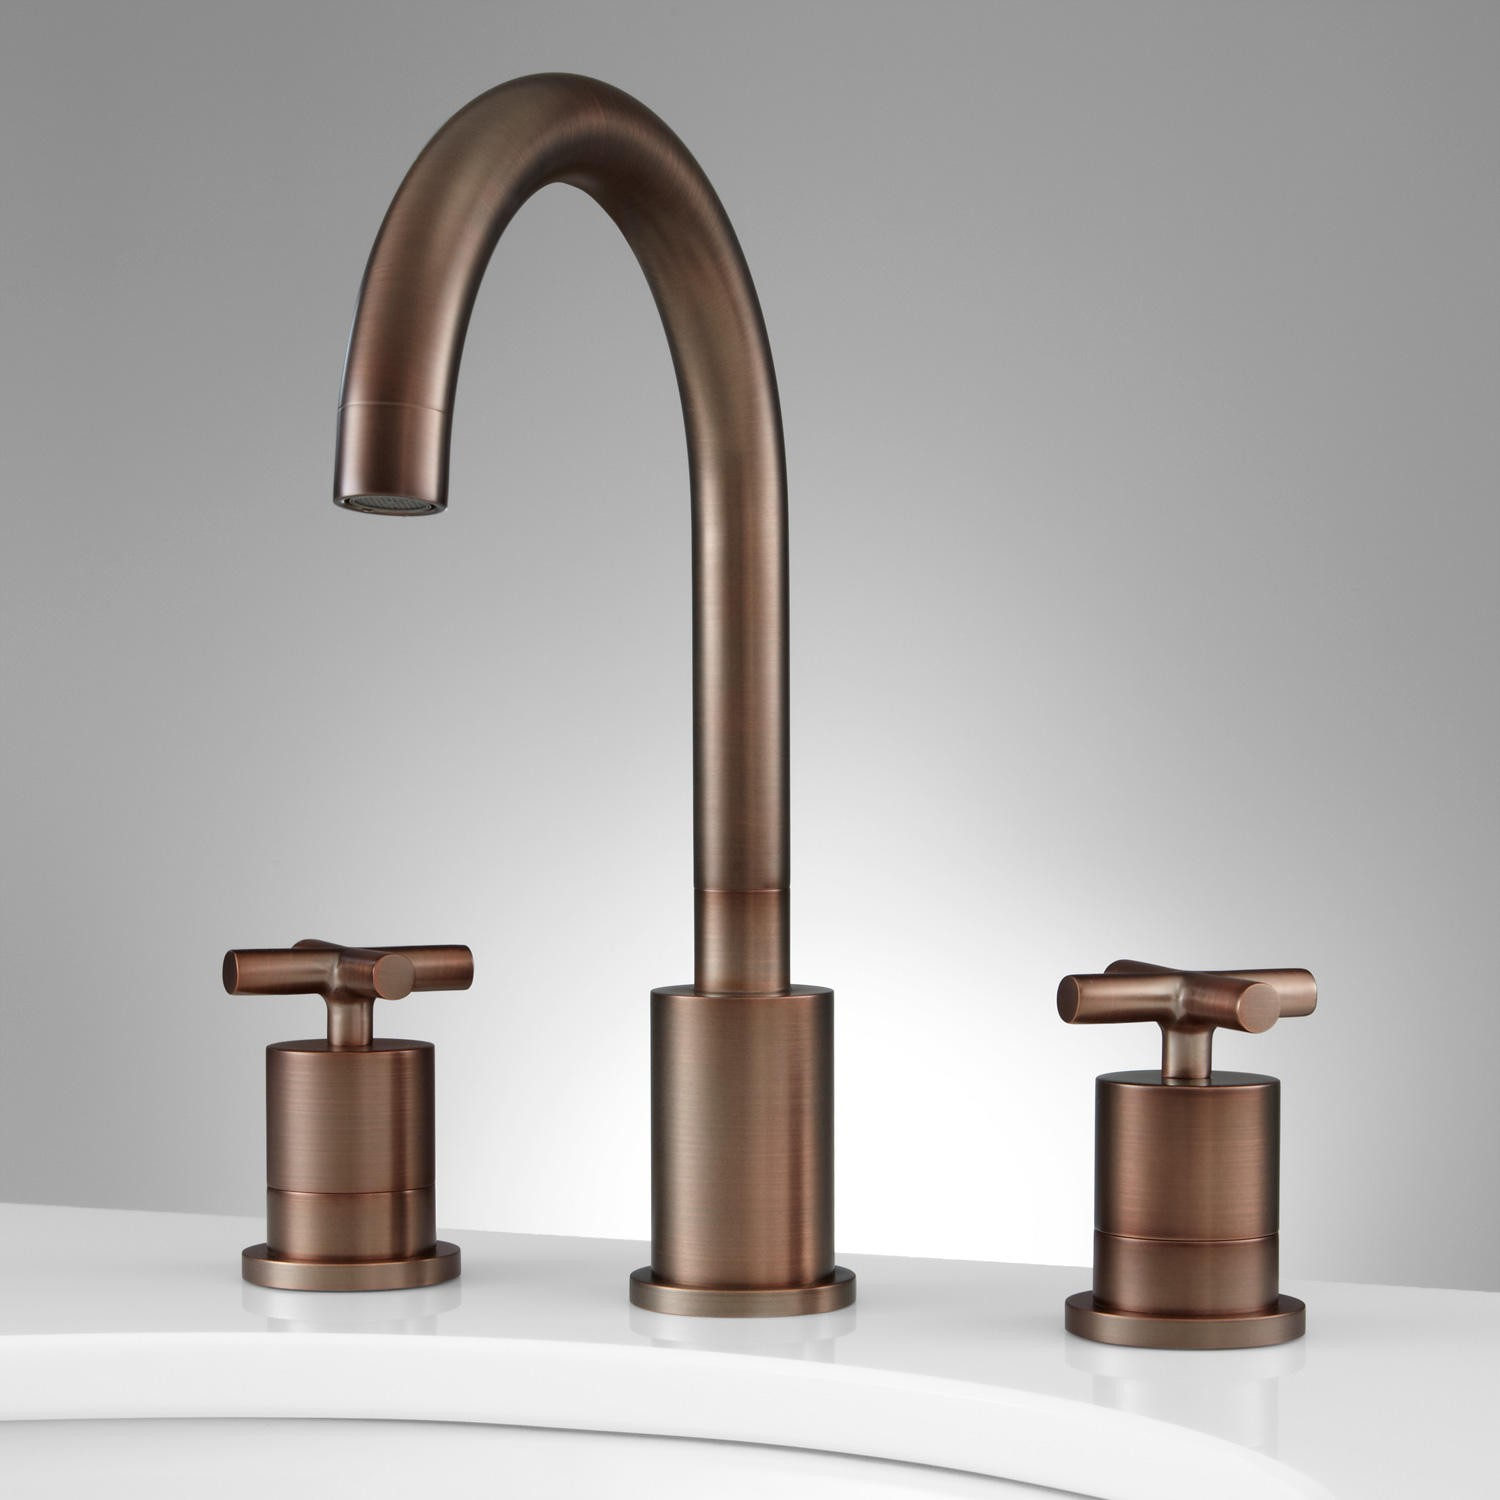 Bathroom Faucets From Lowes bath & shower: lowes delta kitchen faucet | delta shower faucets